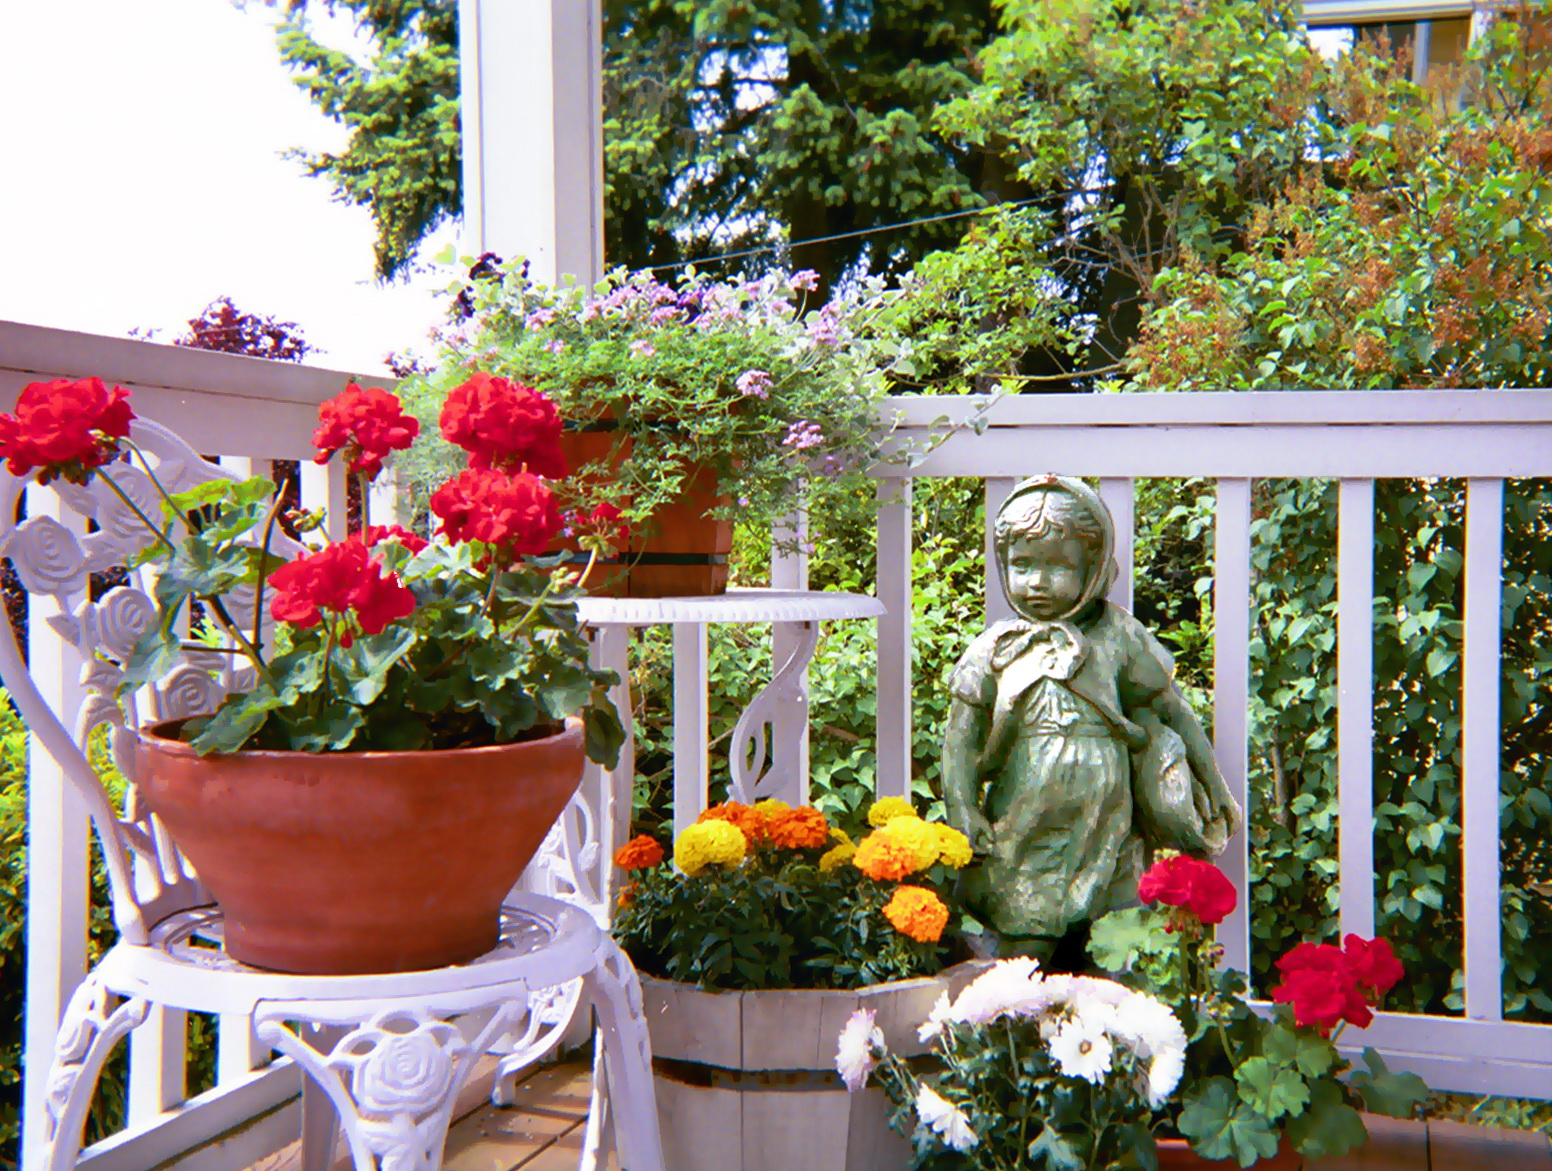 Front porch container gardening ideas - Front Porch Container Gardening Ideas